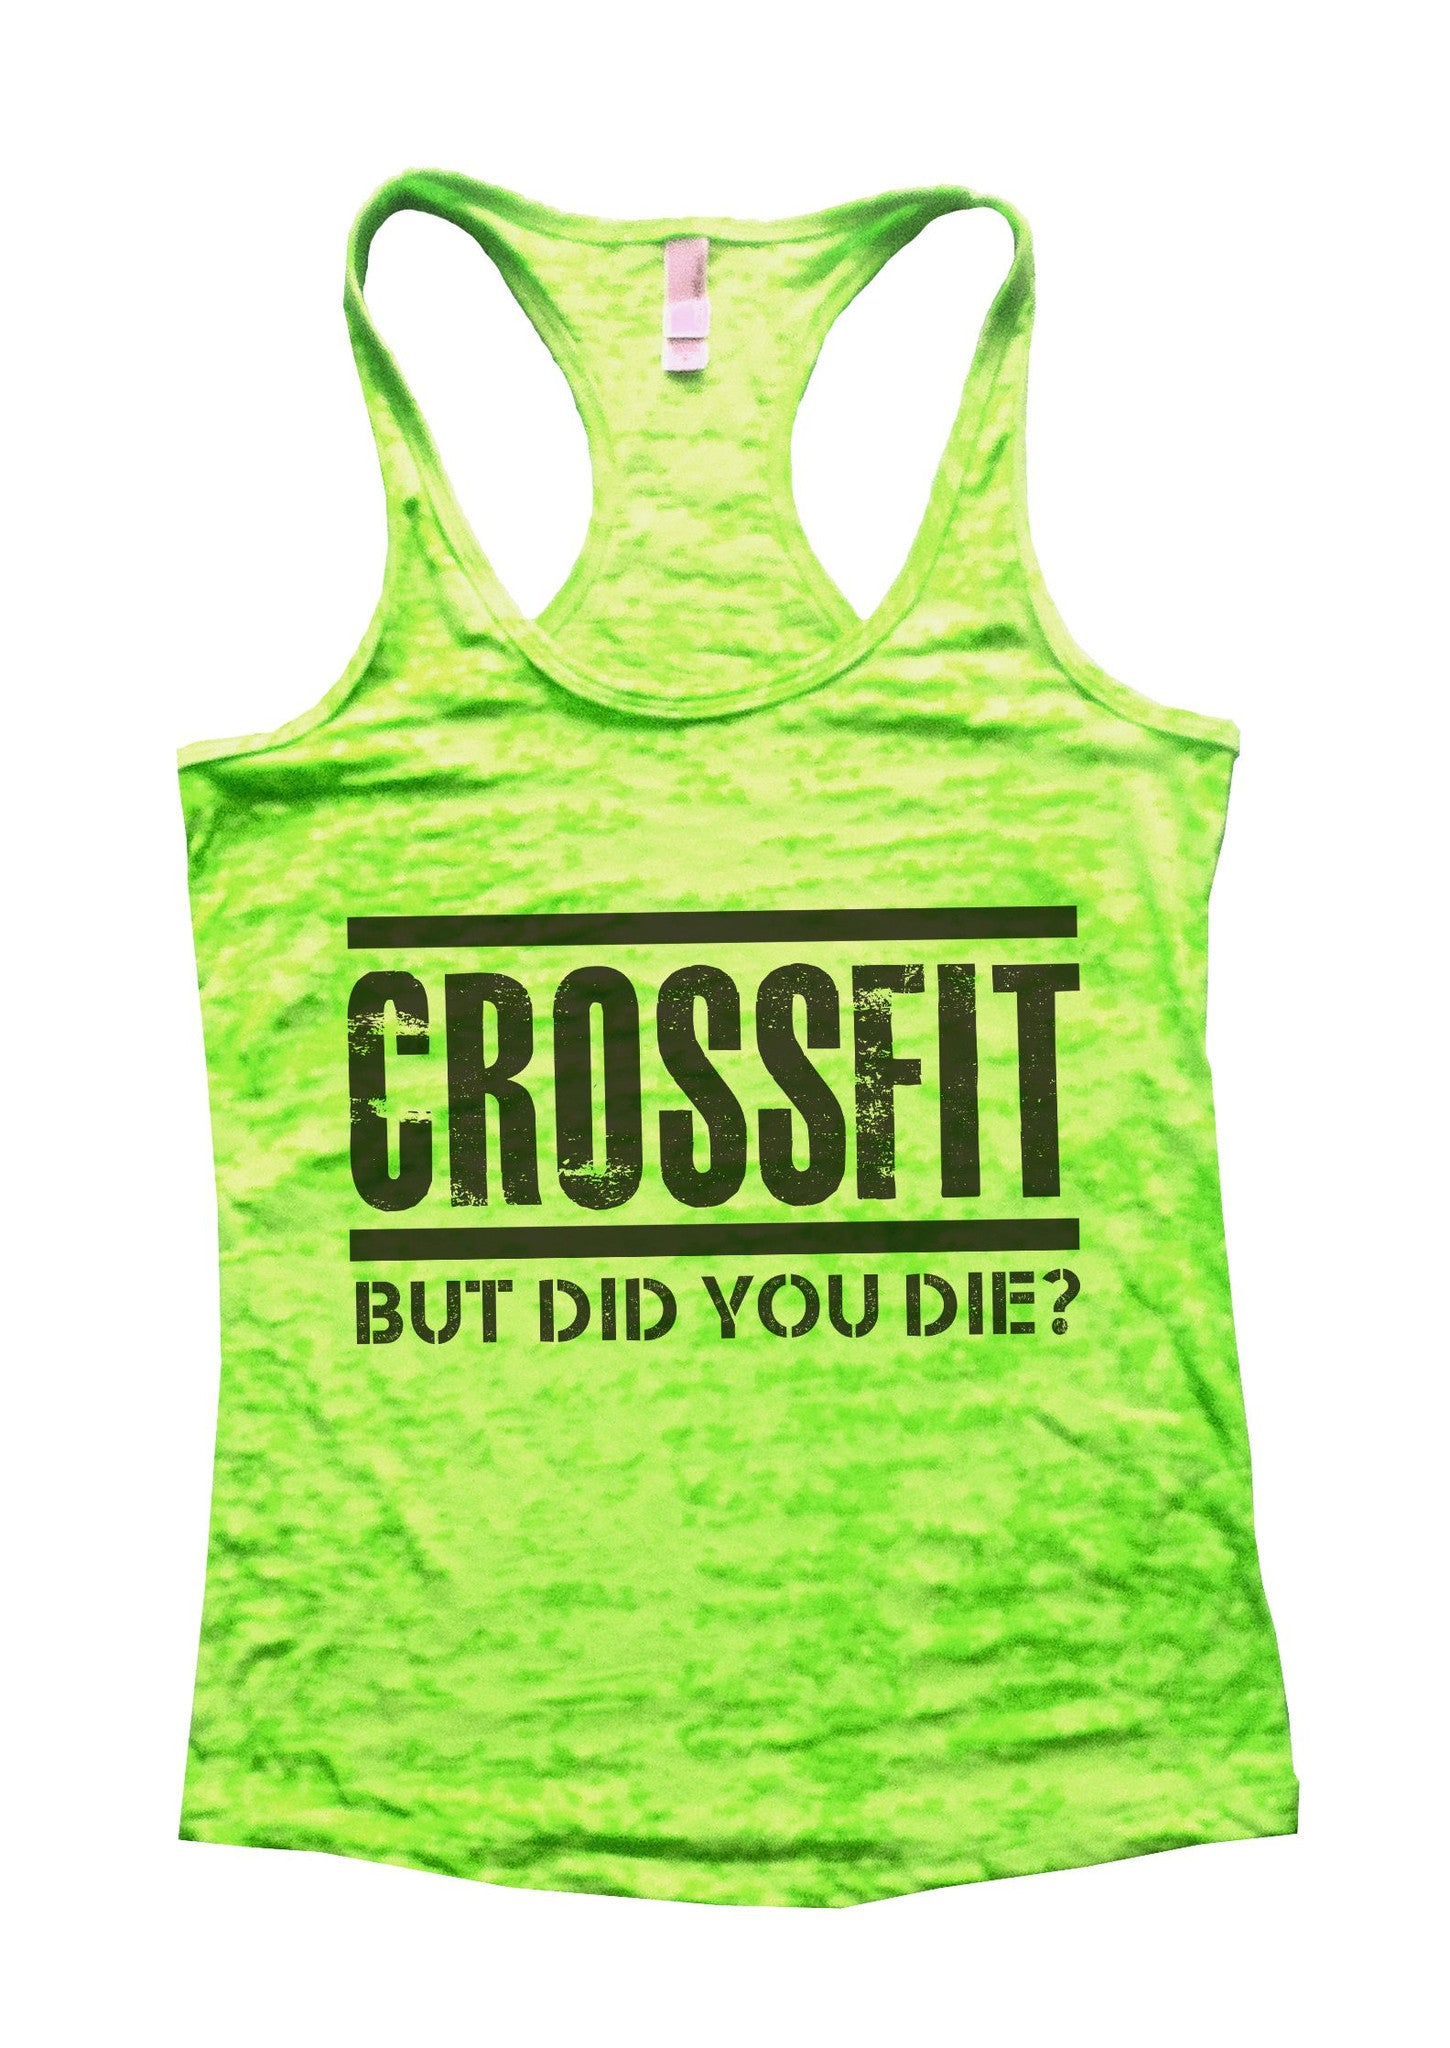 Crossfit But Did You Die Burnout Tank Top By BurnoutTankTops.com - 648 - Funny Shirts Tank Tops Burnouts and Triblends  - 3